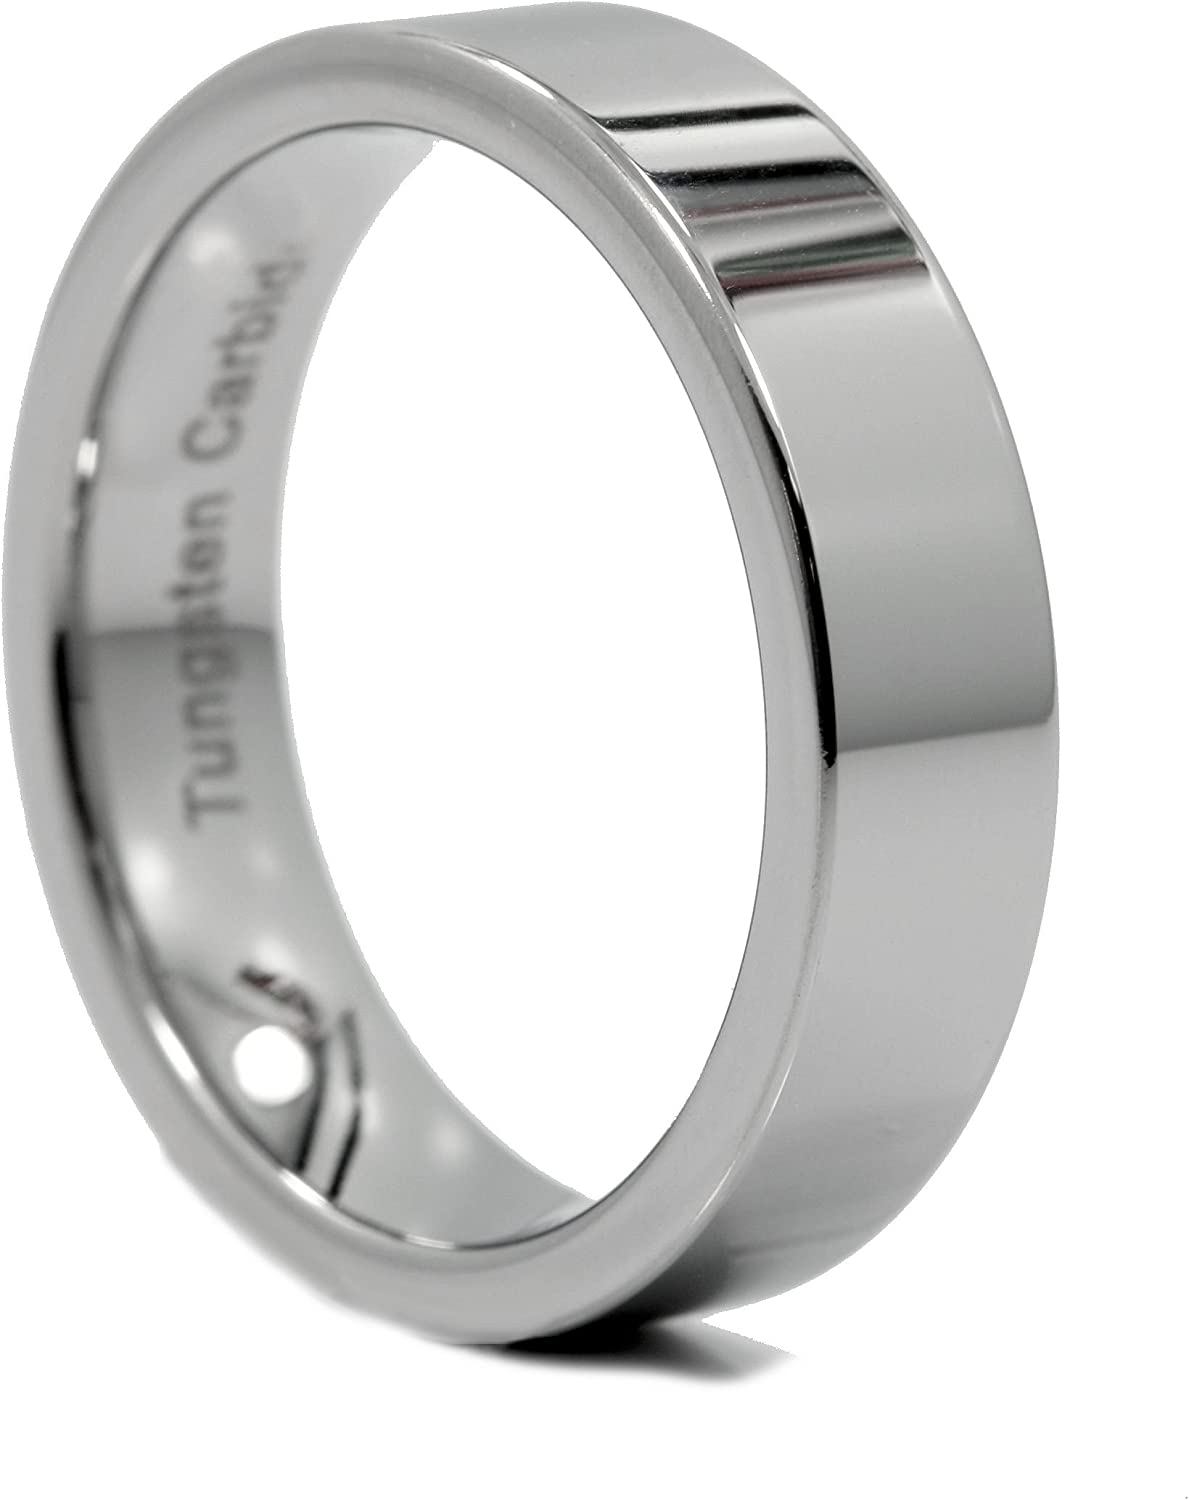 MJ Metals Jewelry 6mm Flat Pipe Cut Tungsten Carbide Wedding Band Mirror Polished Ring Size 11